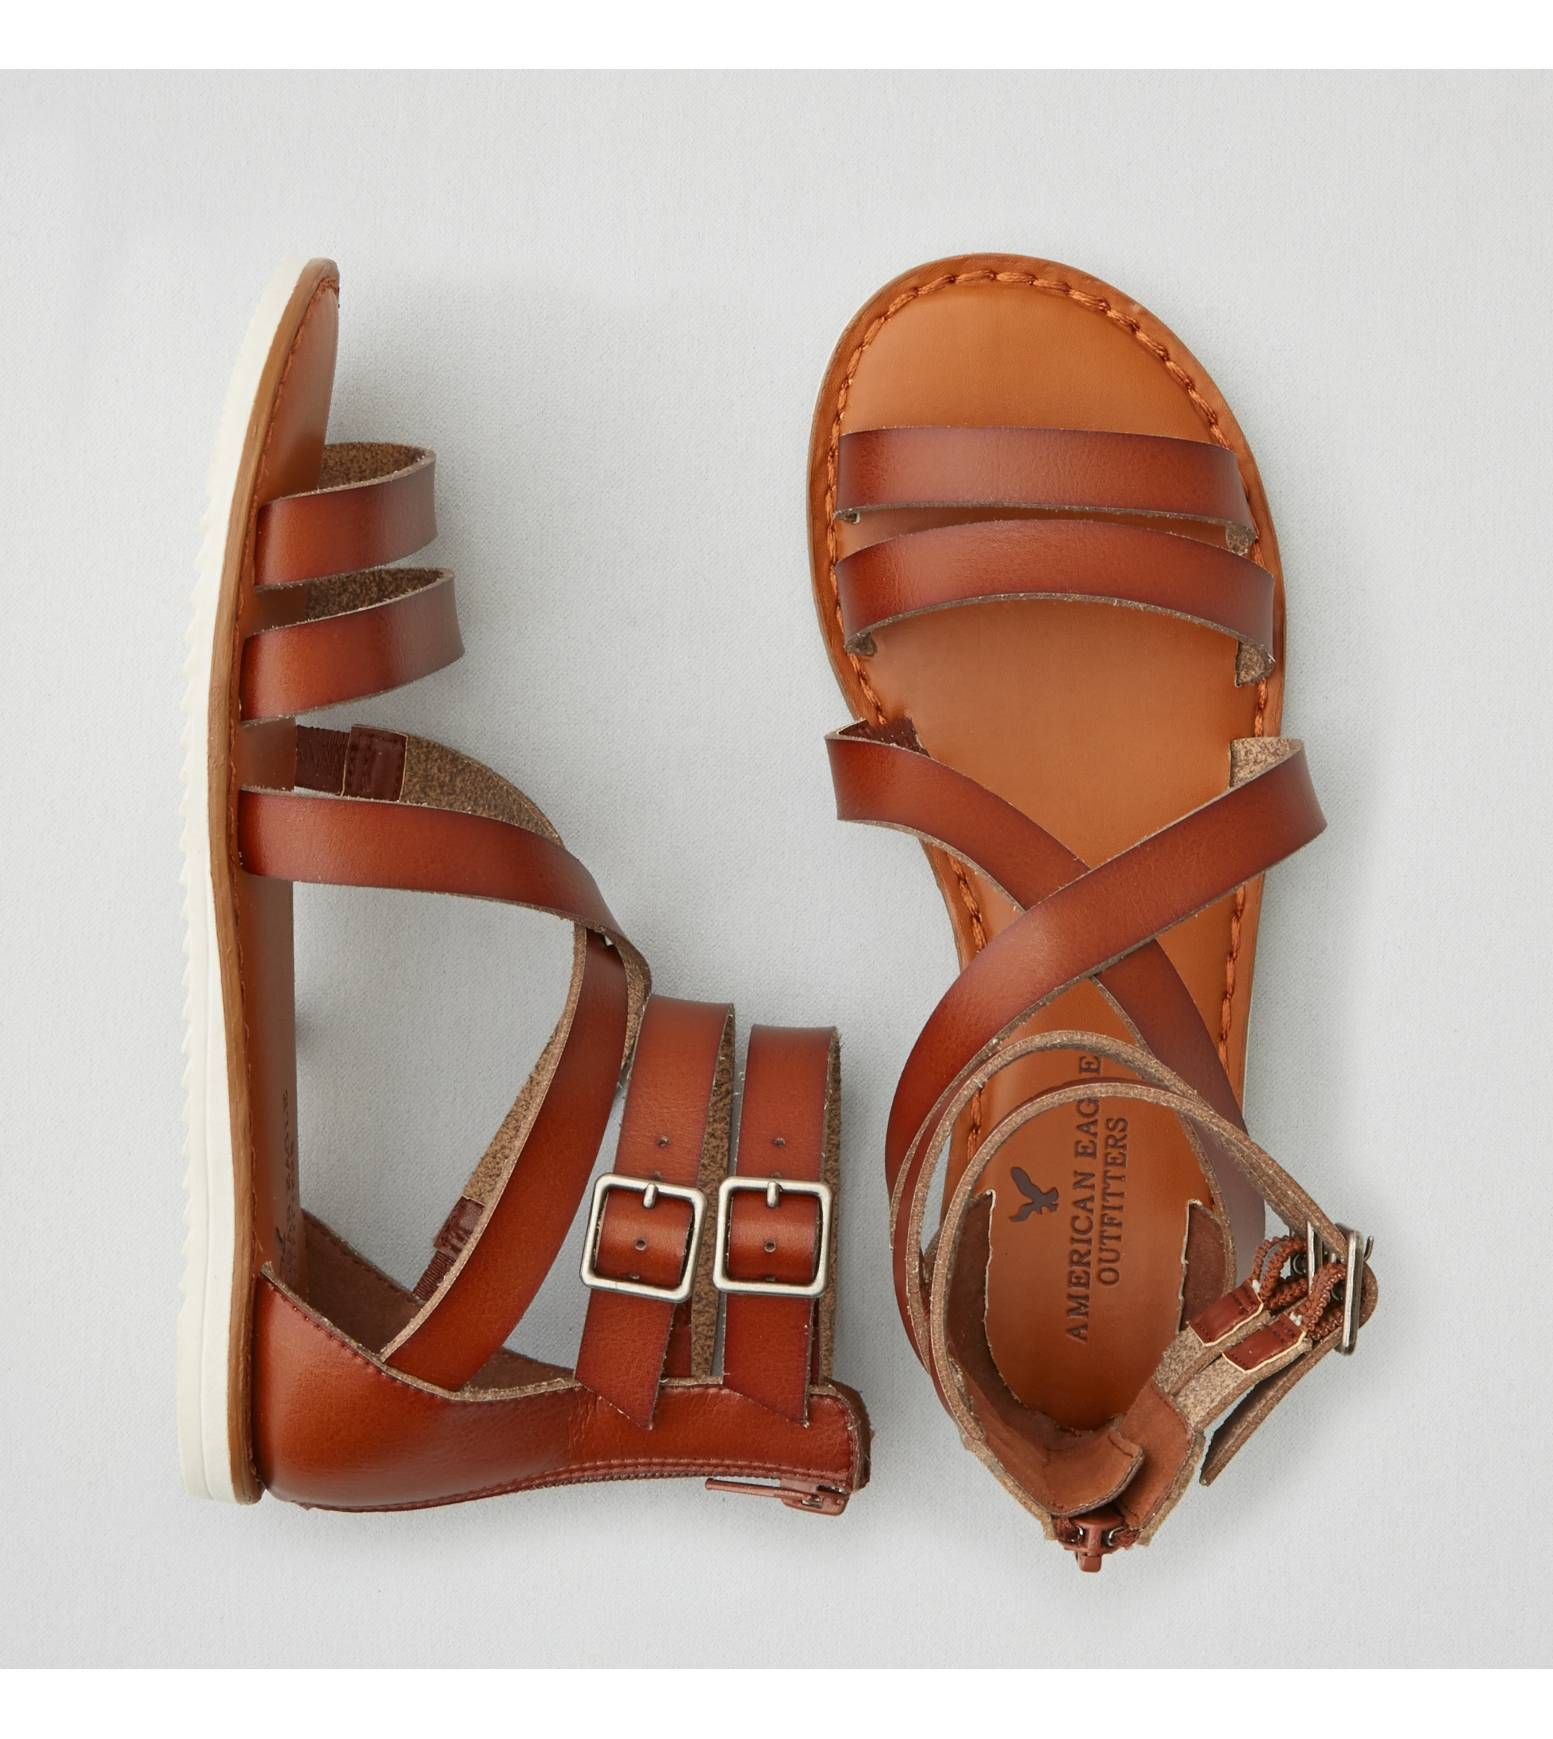 Medium Brown Aeo Buckled Gladiator Sandal Trend We Love